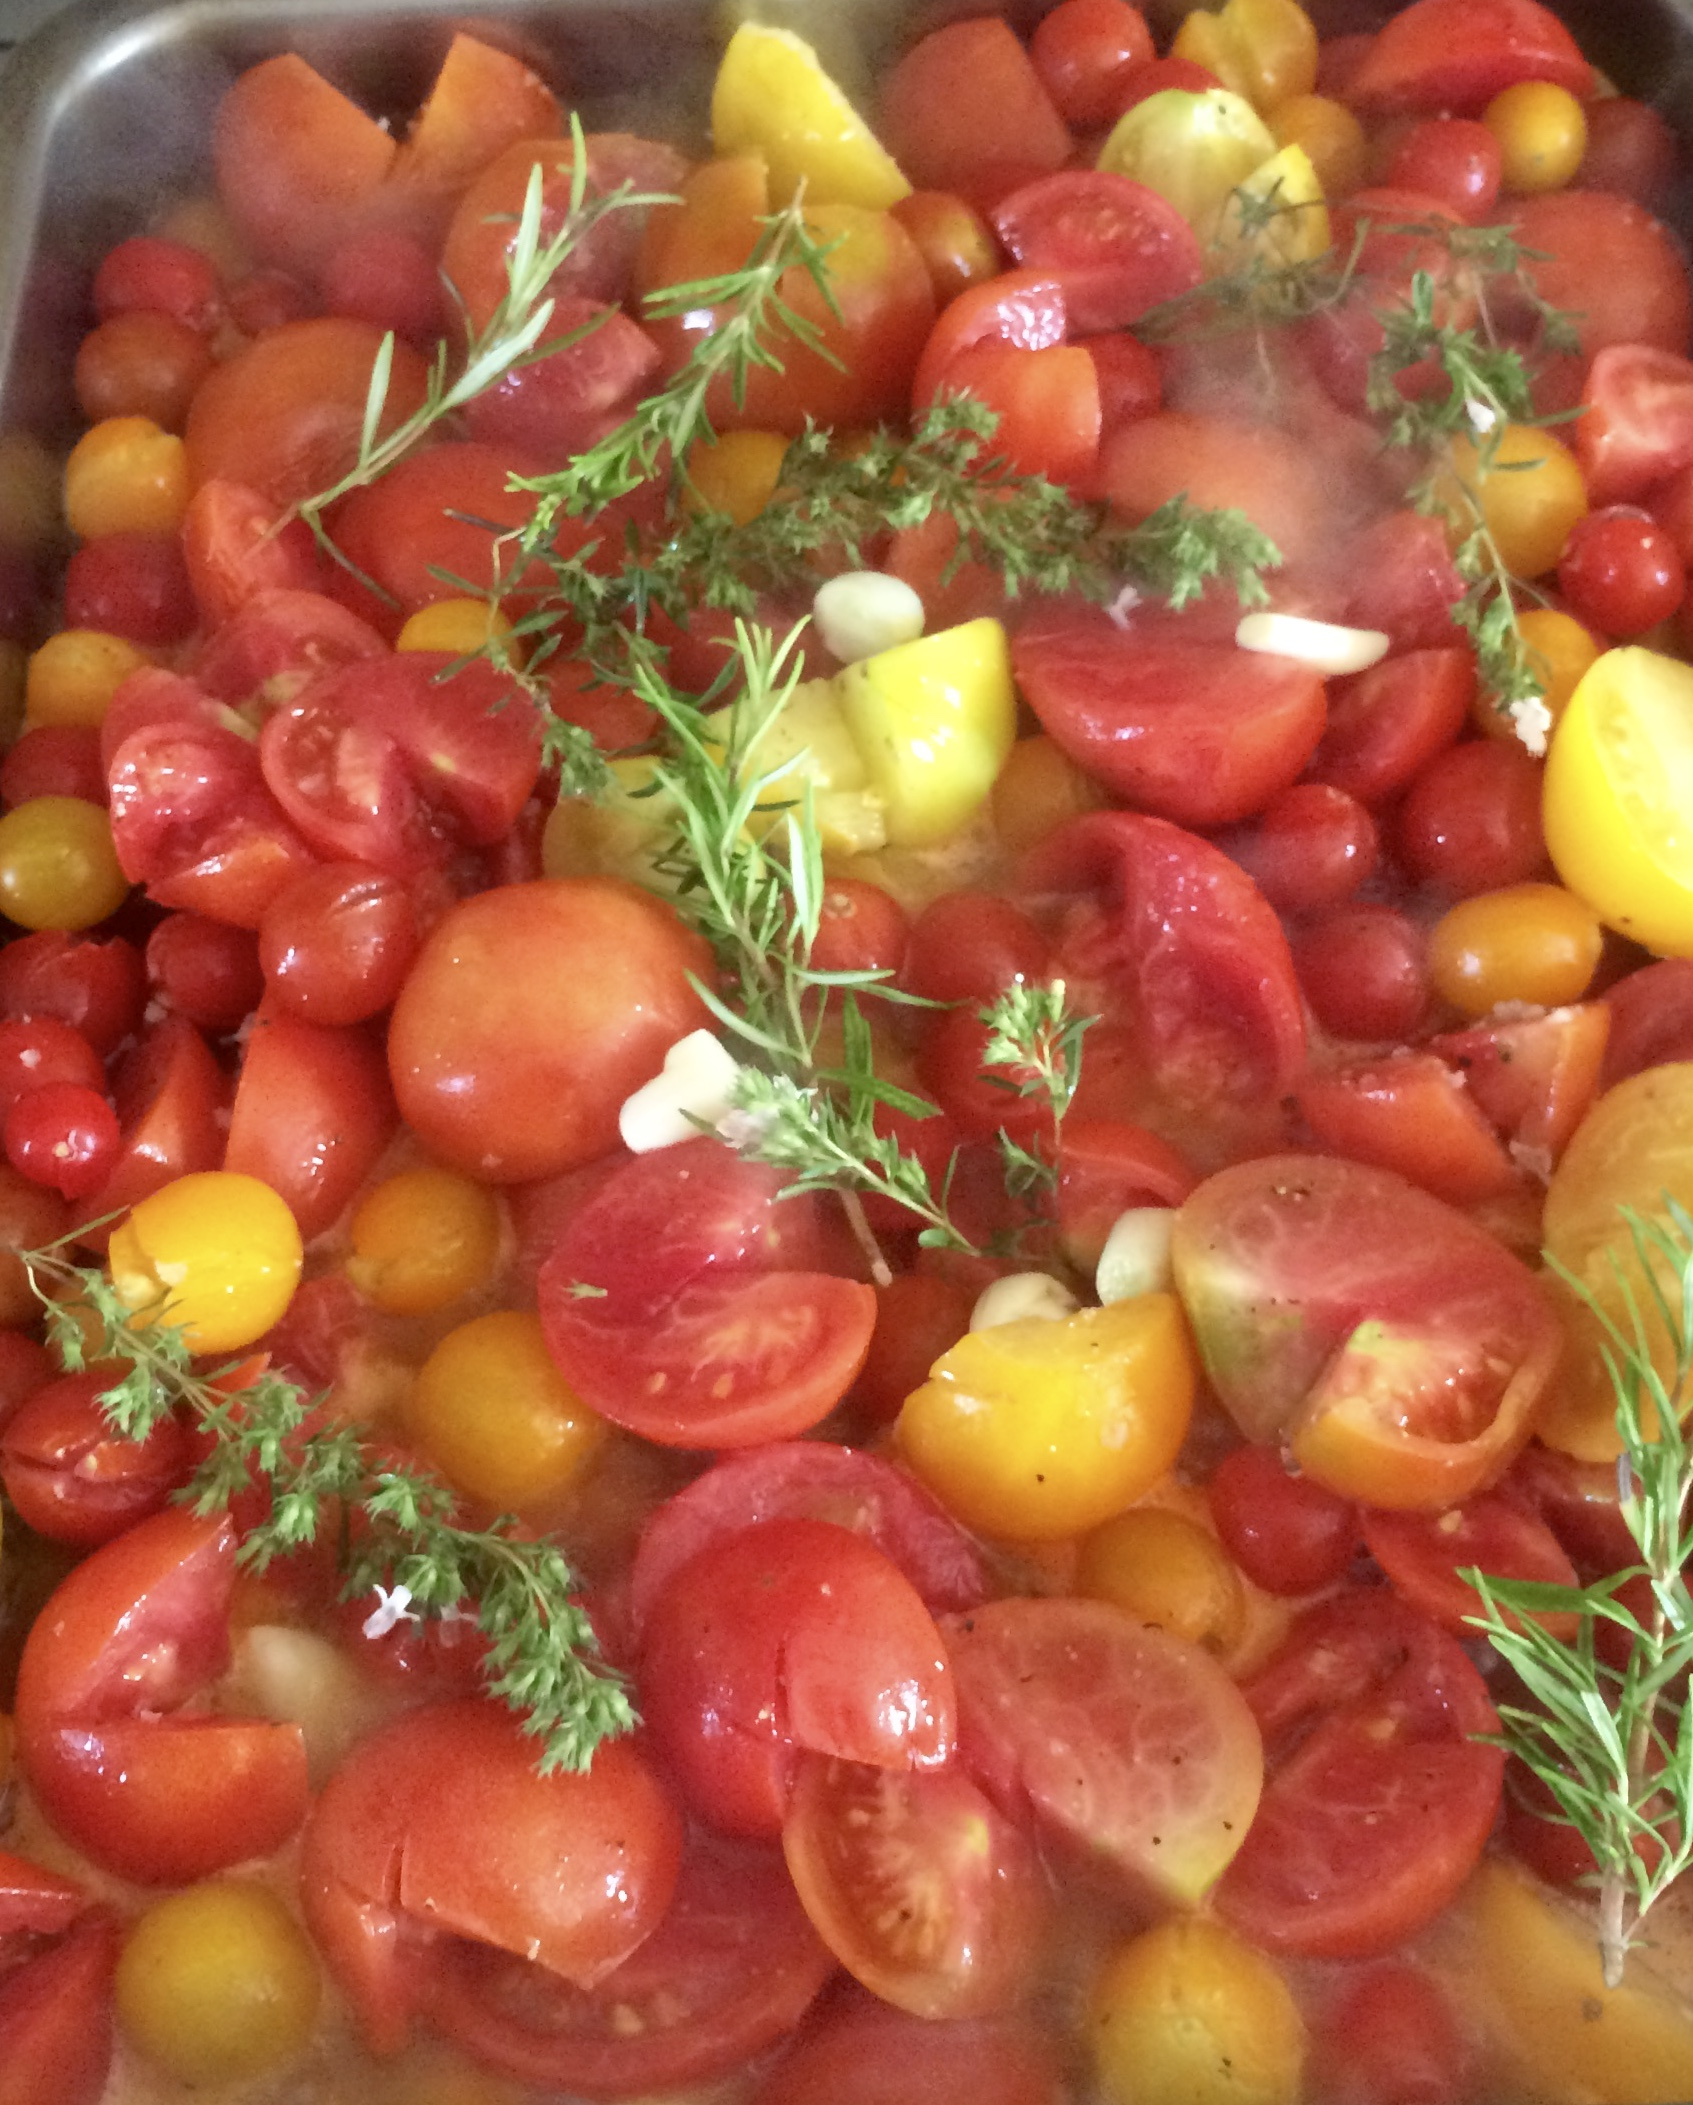 Heaps of tomatoes from the garden